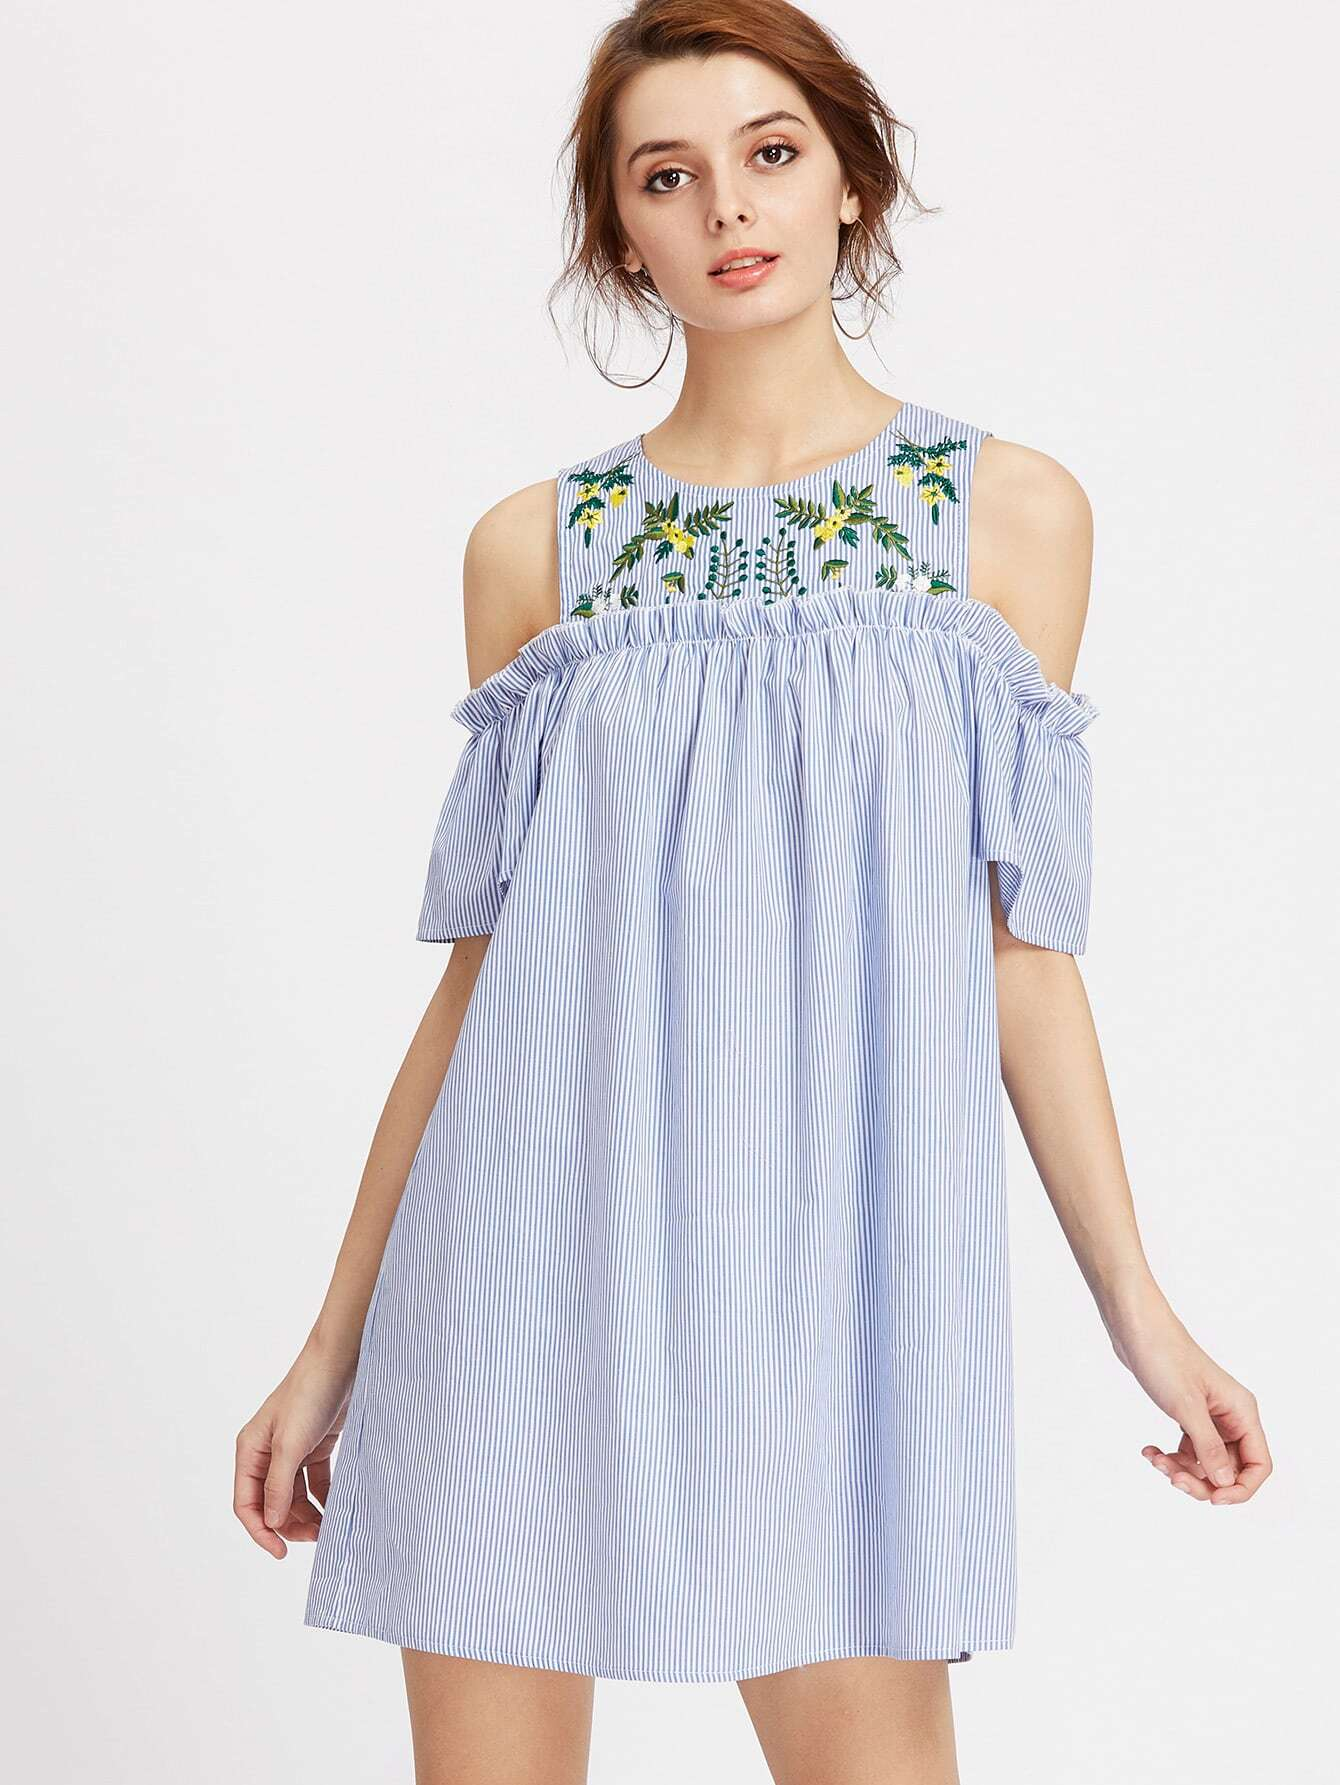 Embroidered Yoke Open Shoulder Frill Detail Striped Dress thumbnail